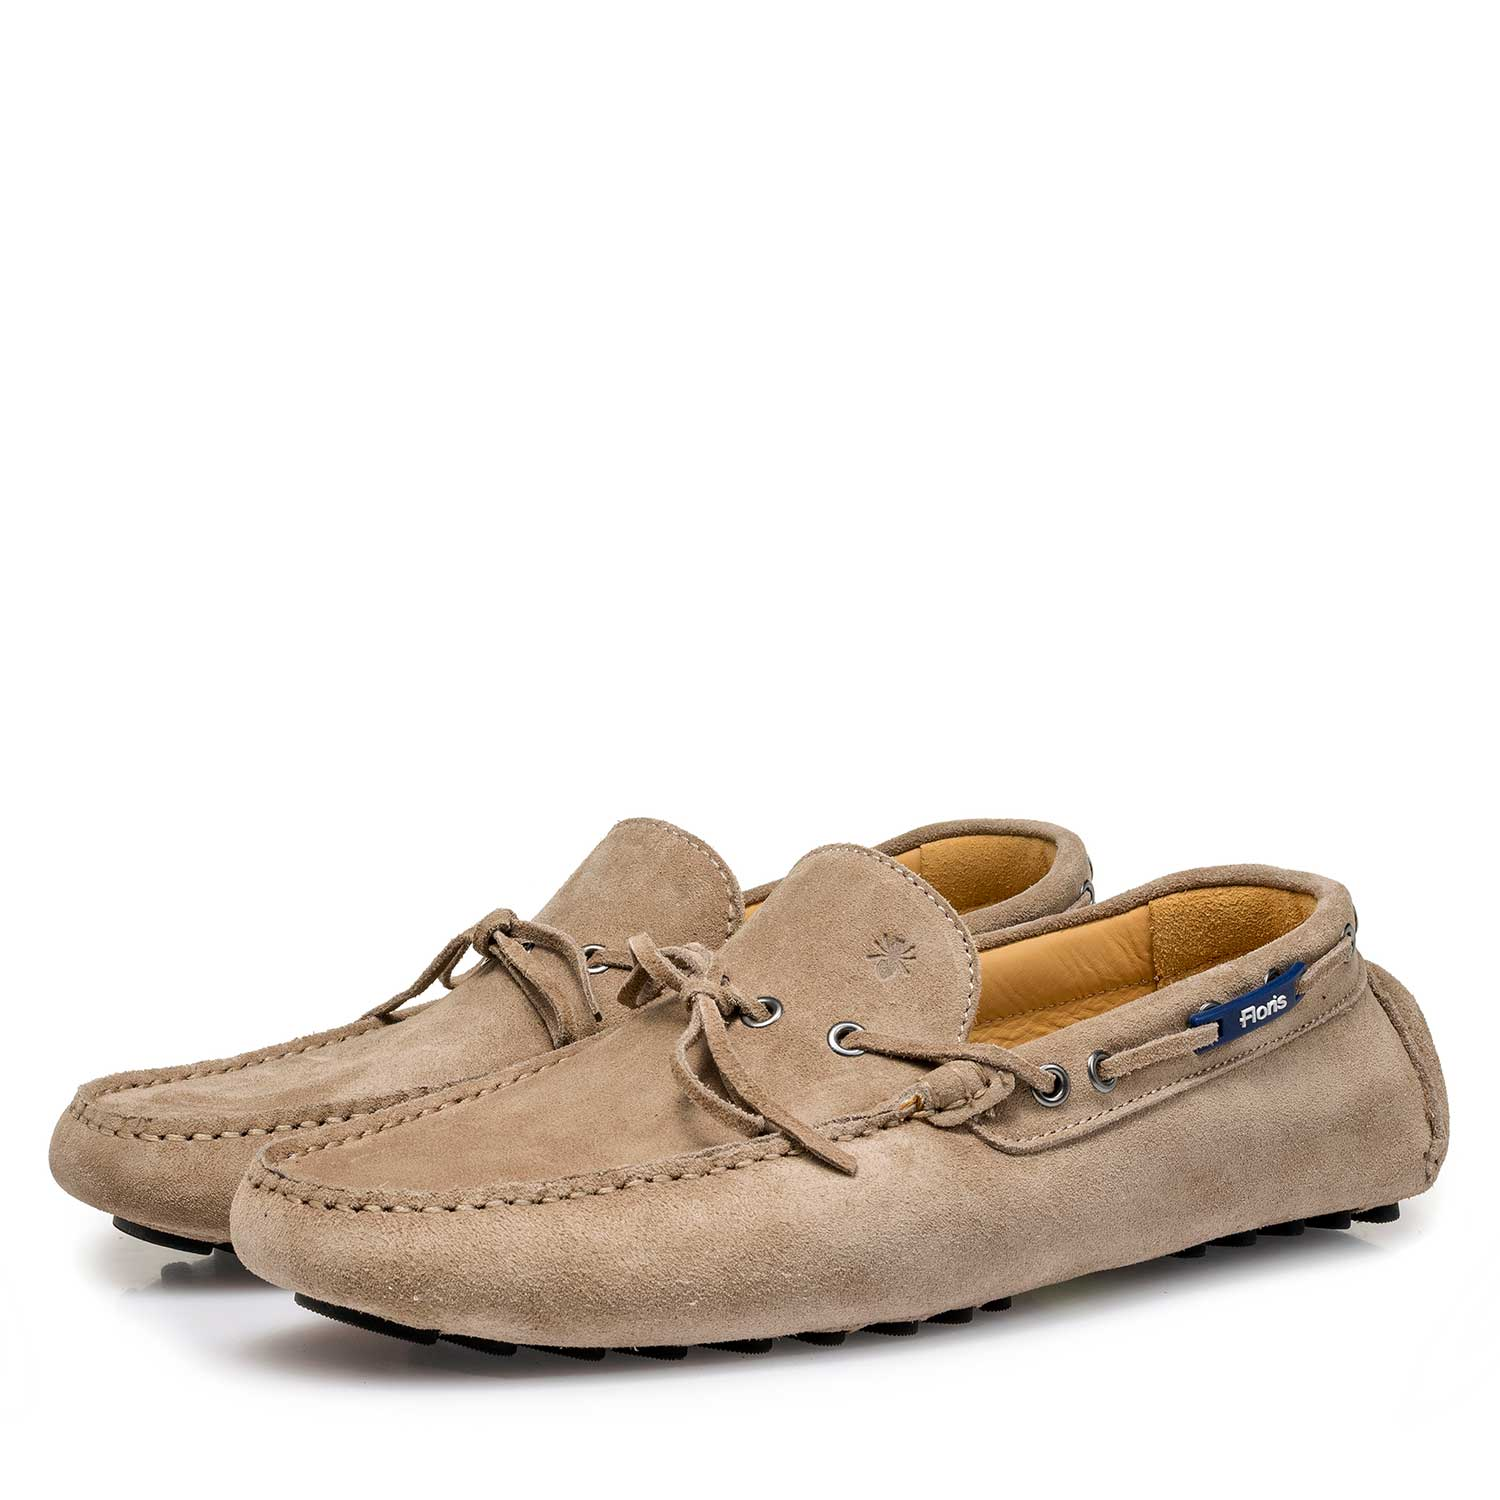 15214/03 - Taupe-coloured calf suede leather moccasin